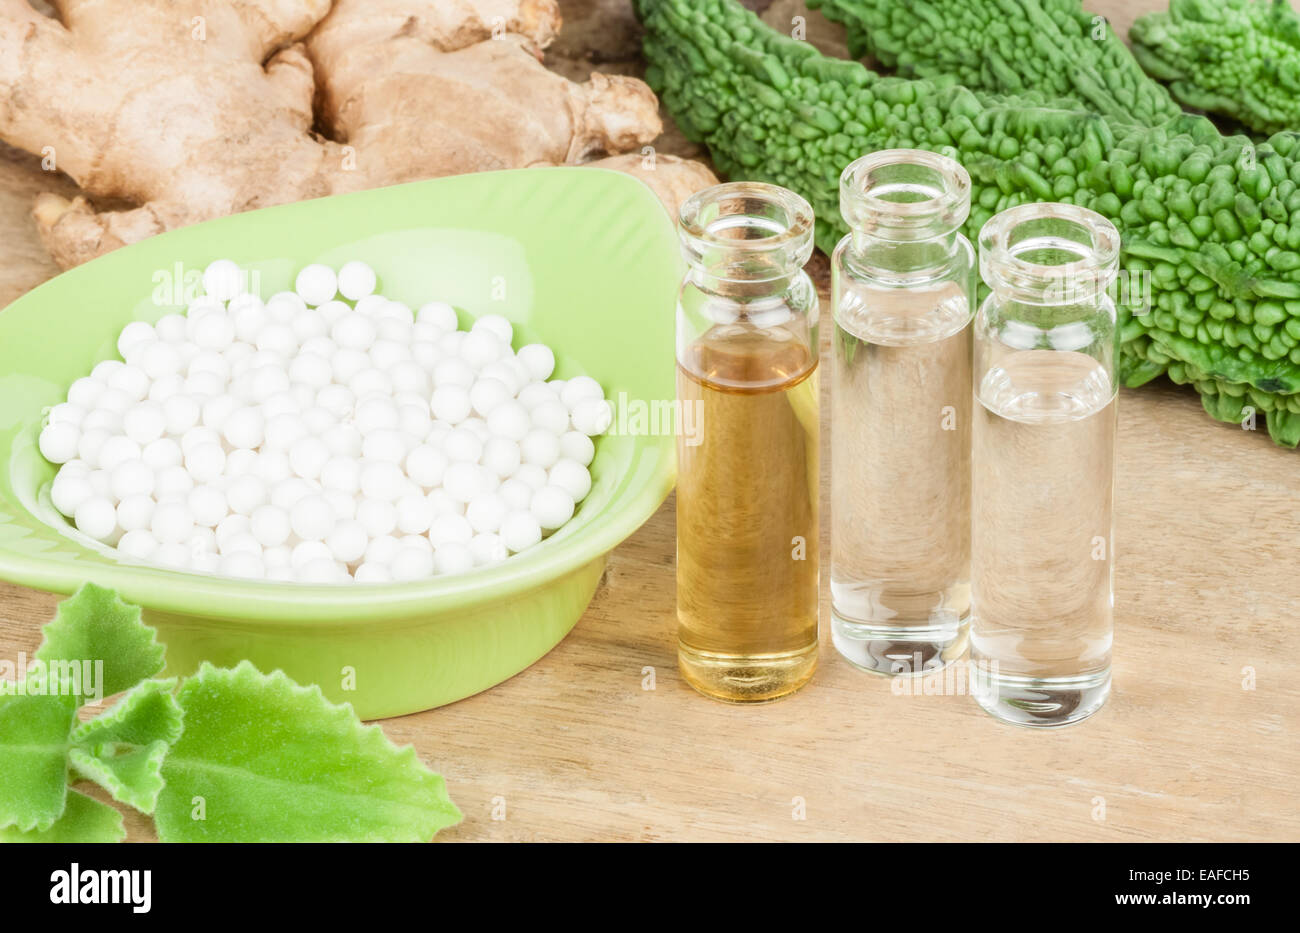 A homeopathy concept with homeopathic medicine pictured along with homeopathic vegetables and herbs on a wooden - Stock Image